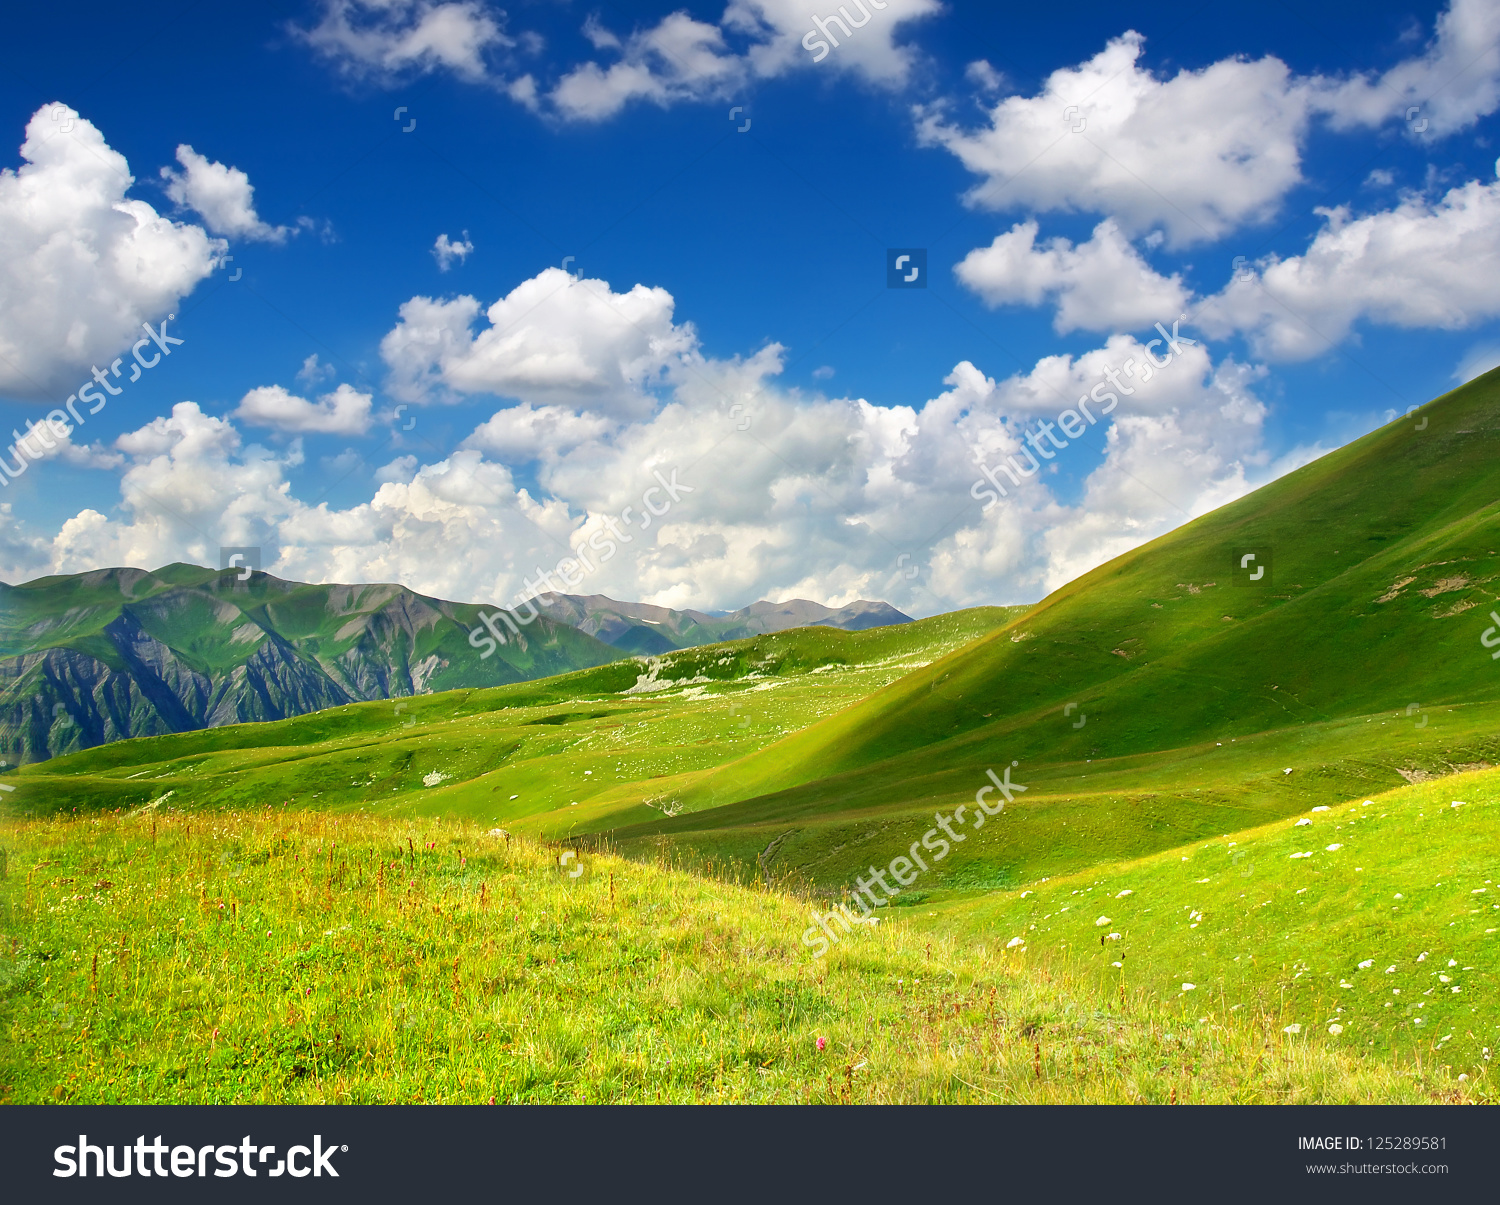 Valley clipart forest road And Valleys clipart Hills valleys